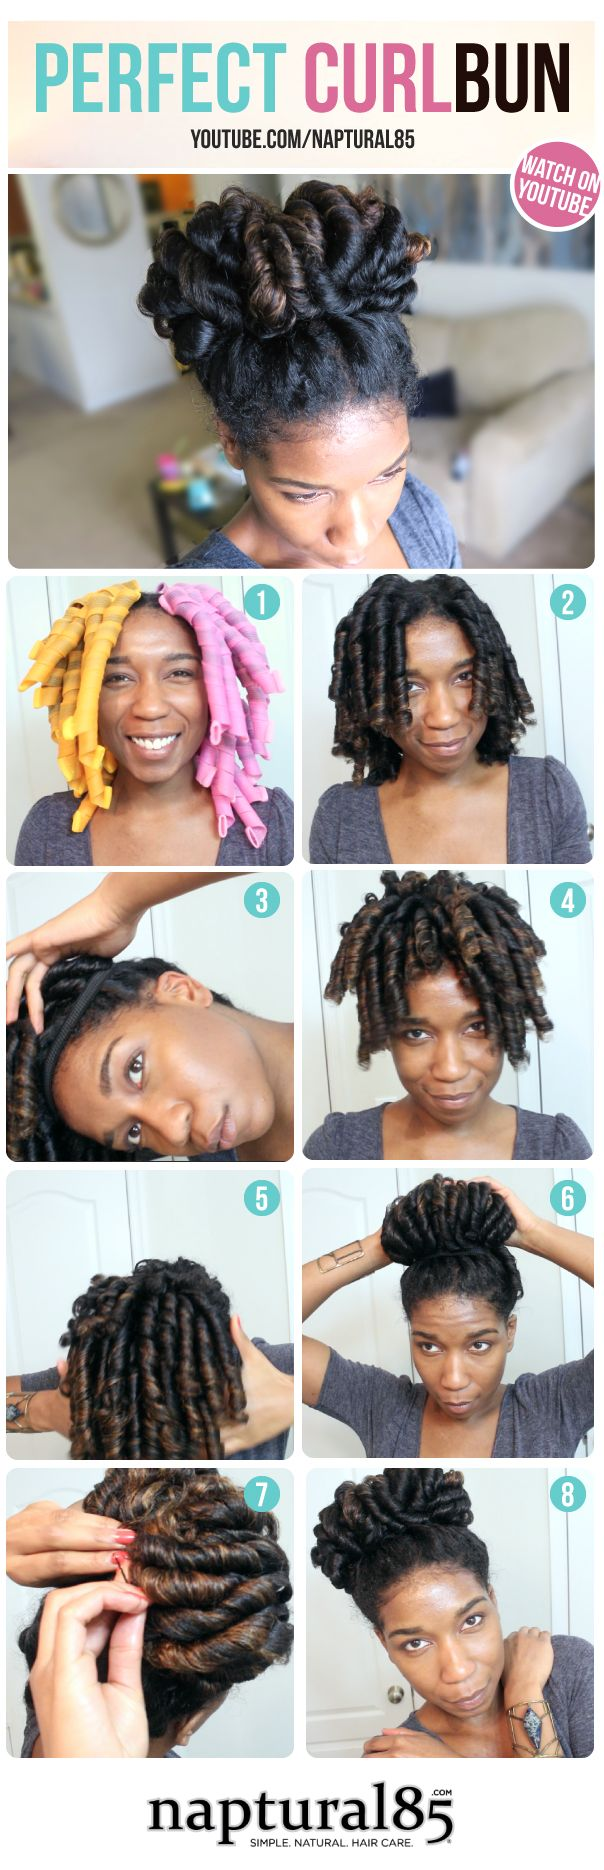 5 Stunning Pictorials of Perm Rod Styles | Black Girl with Long Hair | napatural85 | perfect curl bun